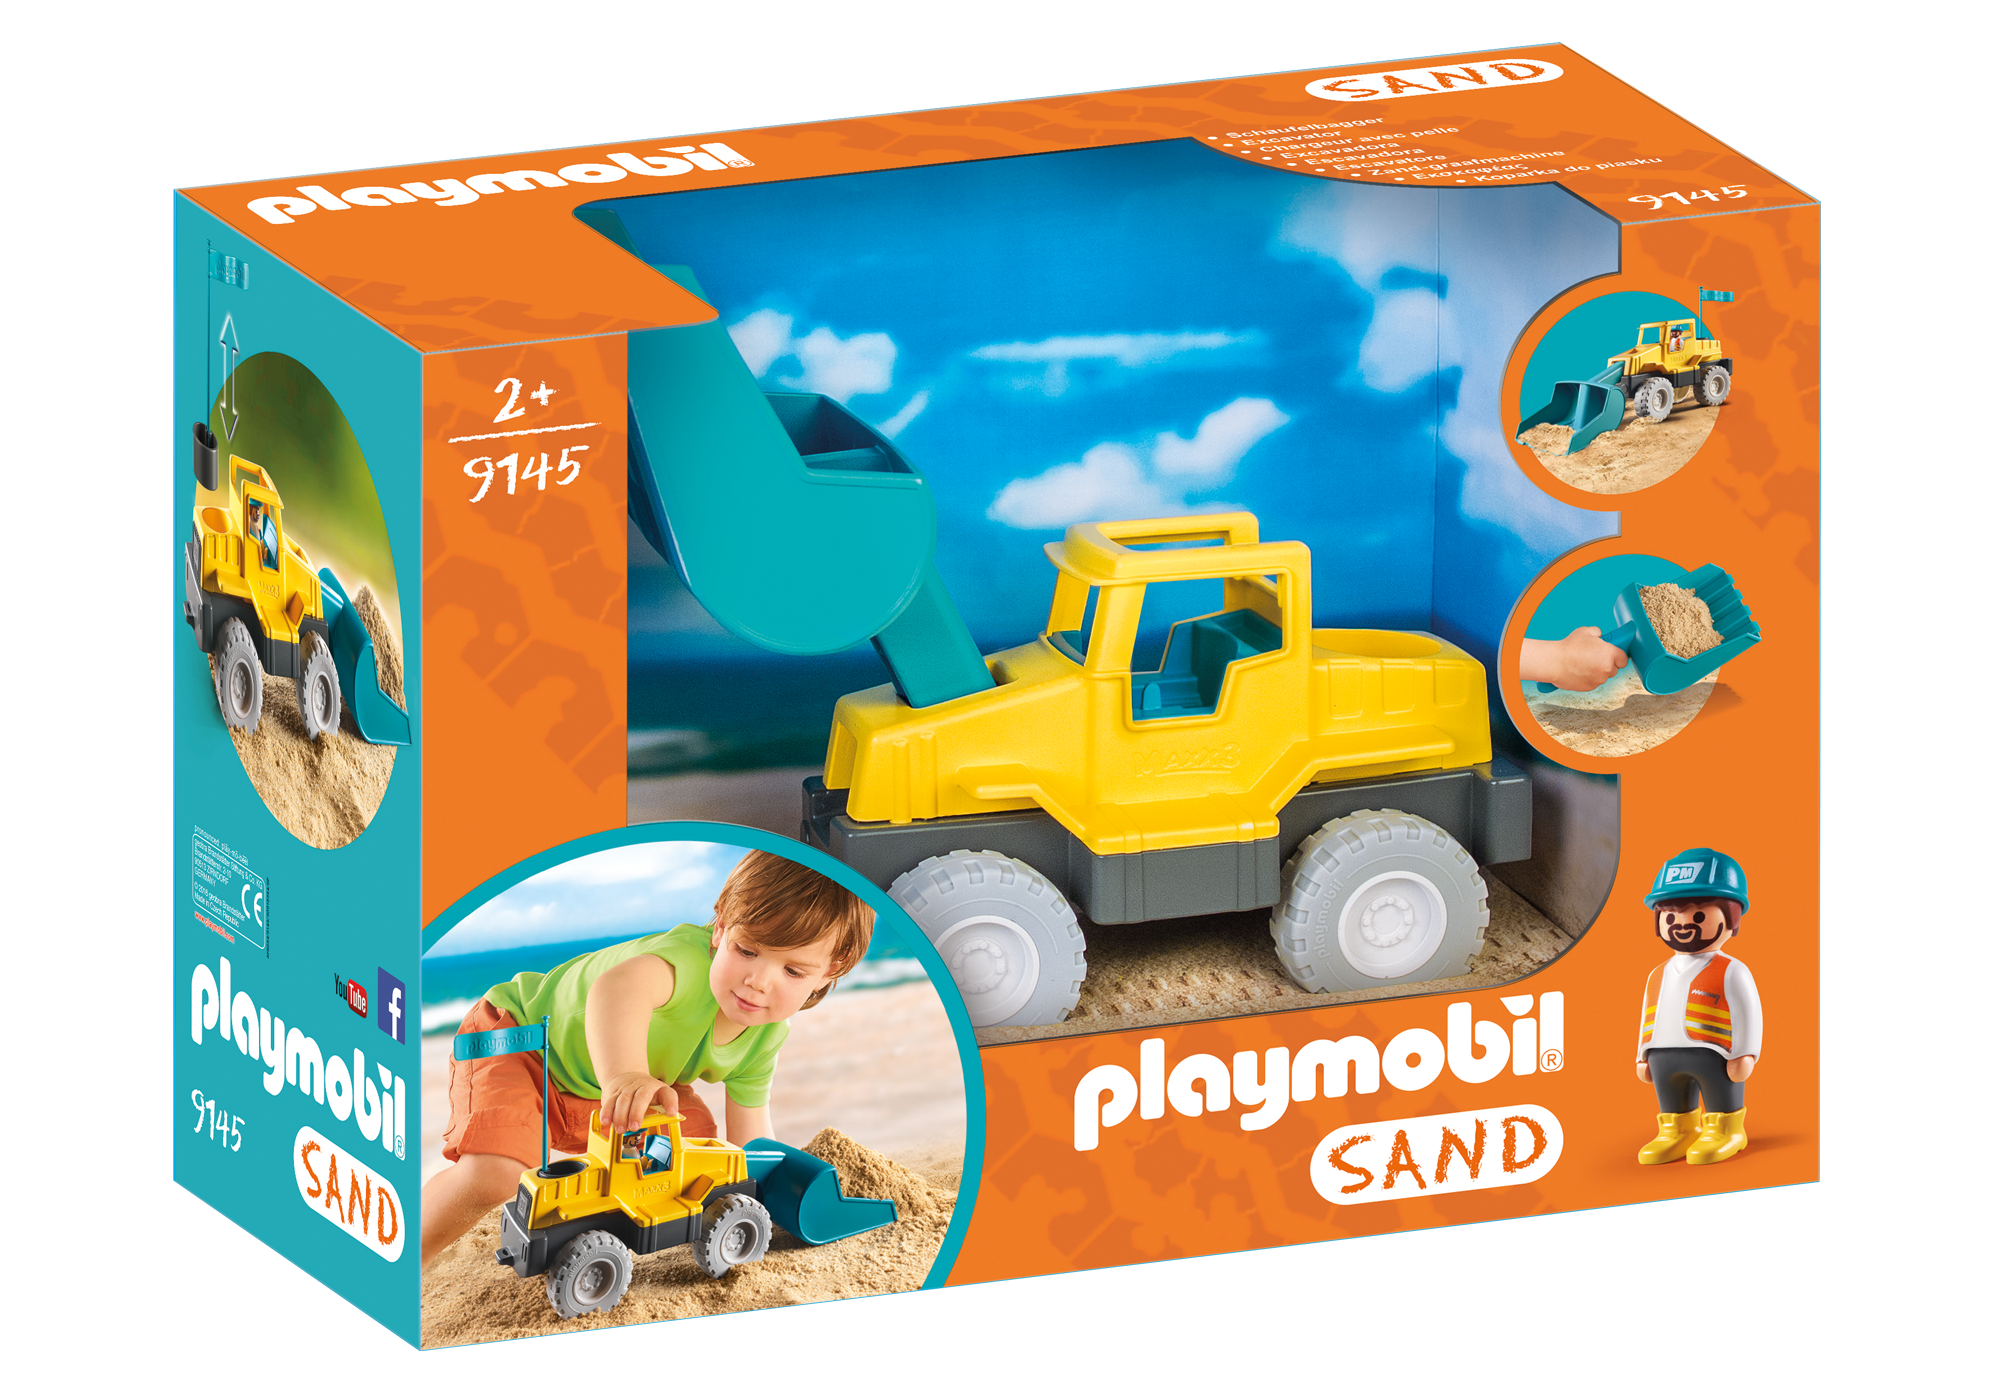 http://media.playmobil.com/i/playmobil/9145_product_box_front